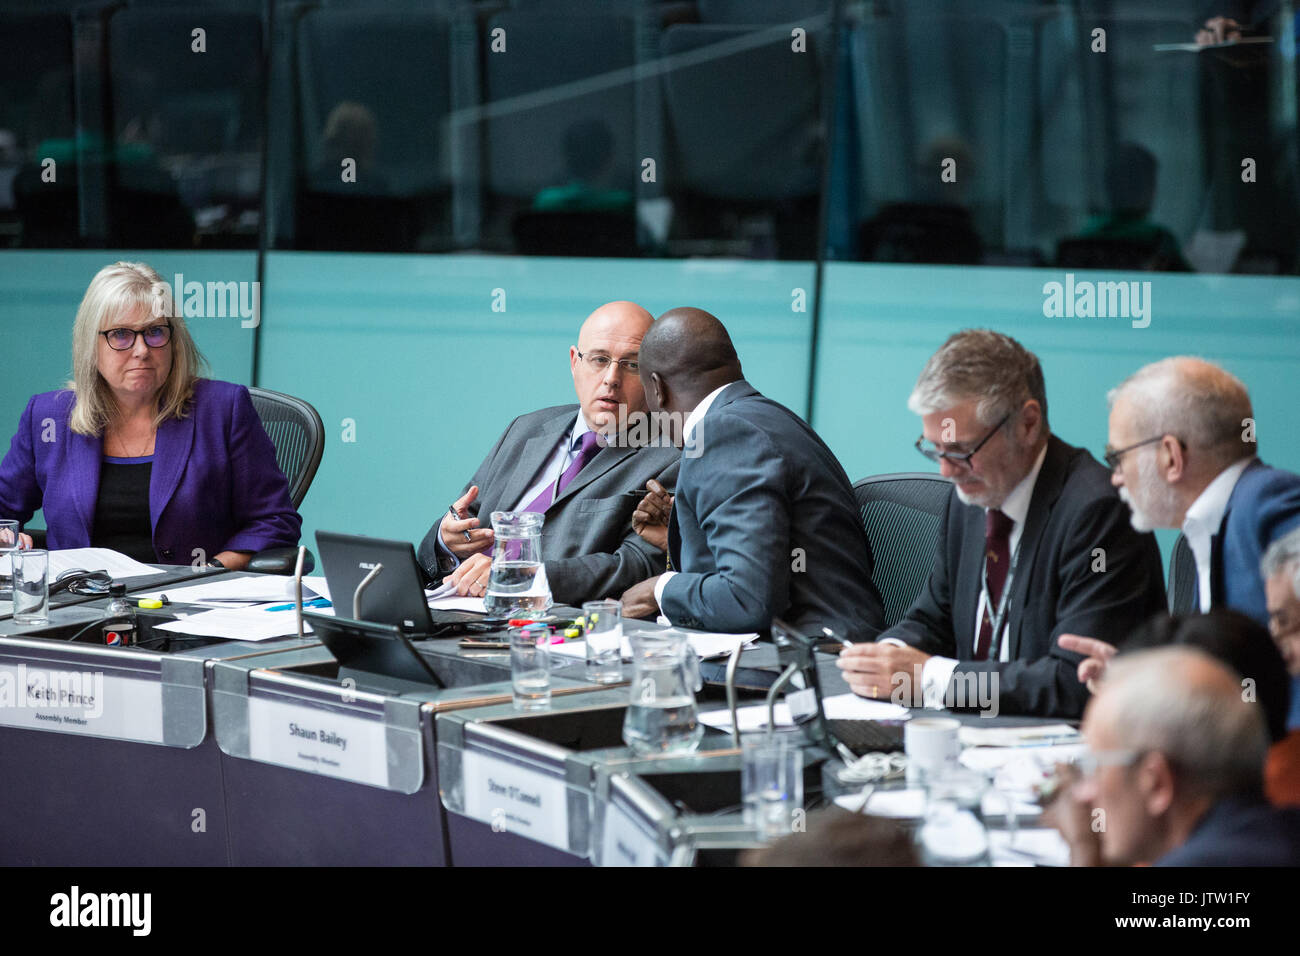 London, UK. 10th August, 2017. London Assembly Members Keith Prince and Shaun Bailey converse during Mayor's Question Time at City Hall. Among topics discussed were: acid attacks, social housing, expenditure on fire and police services, 4G coverage on underground trains and noise from overnight underground trains. Credit: Mark Kerrison/Alamy Live News - Stock Image